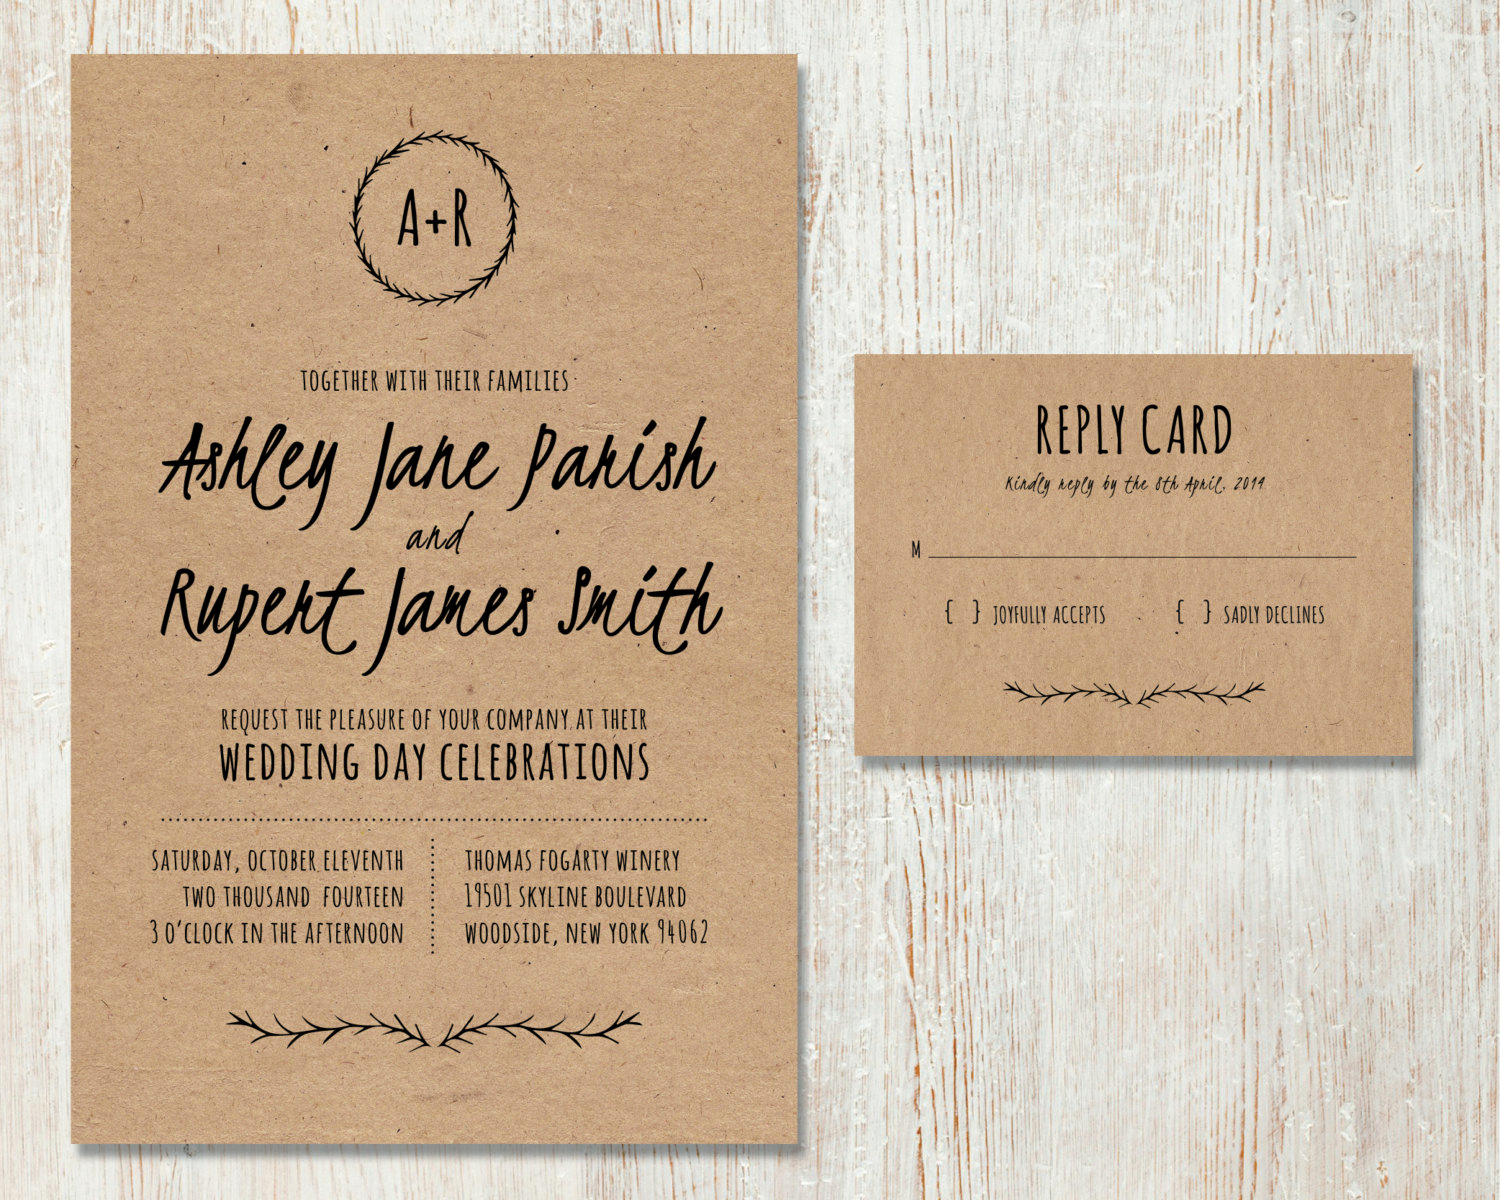 Rustic Wedding Invitation Paper Lovely Rustic Wedding Invitation Diy Kraft Paper Invitation Country